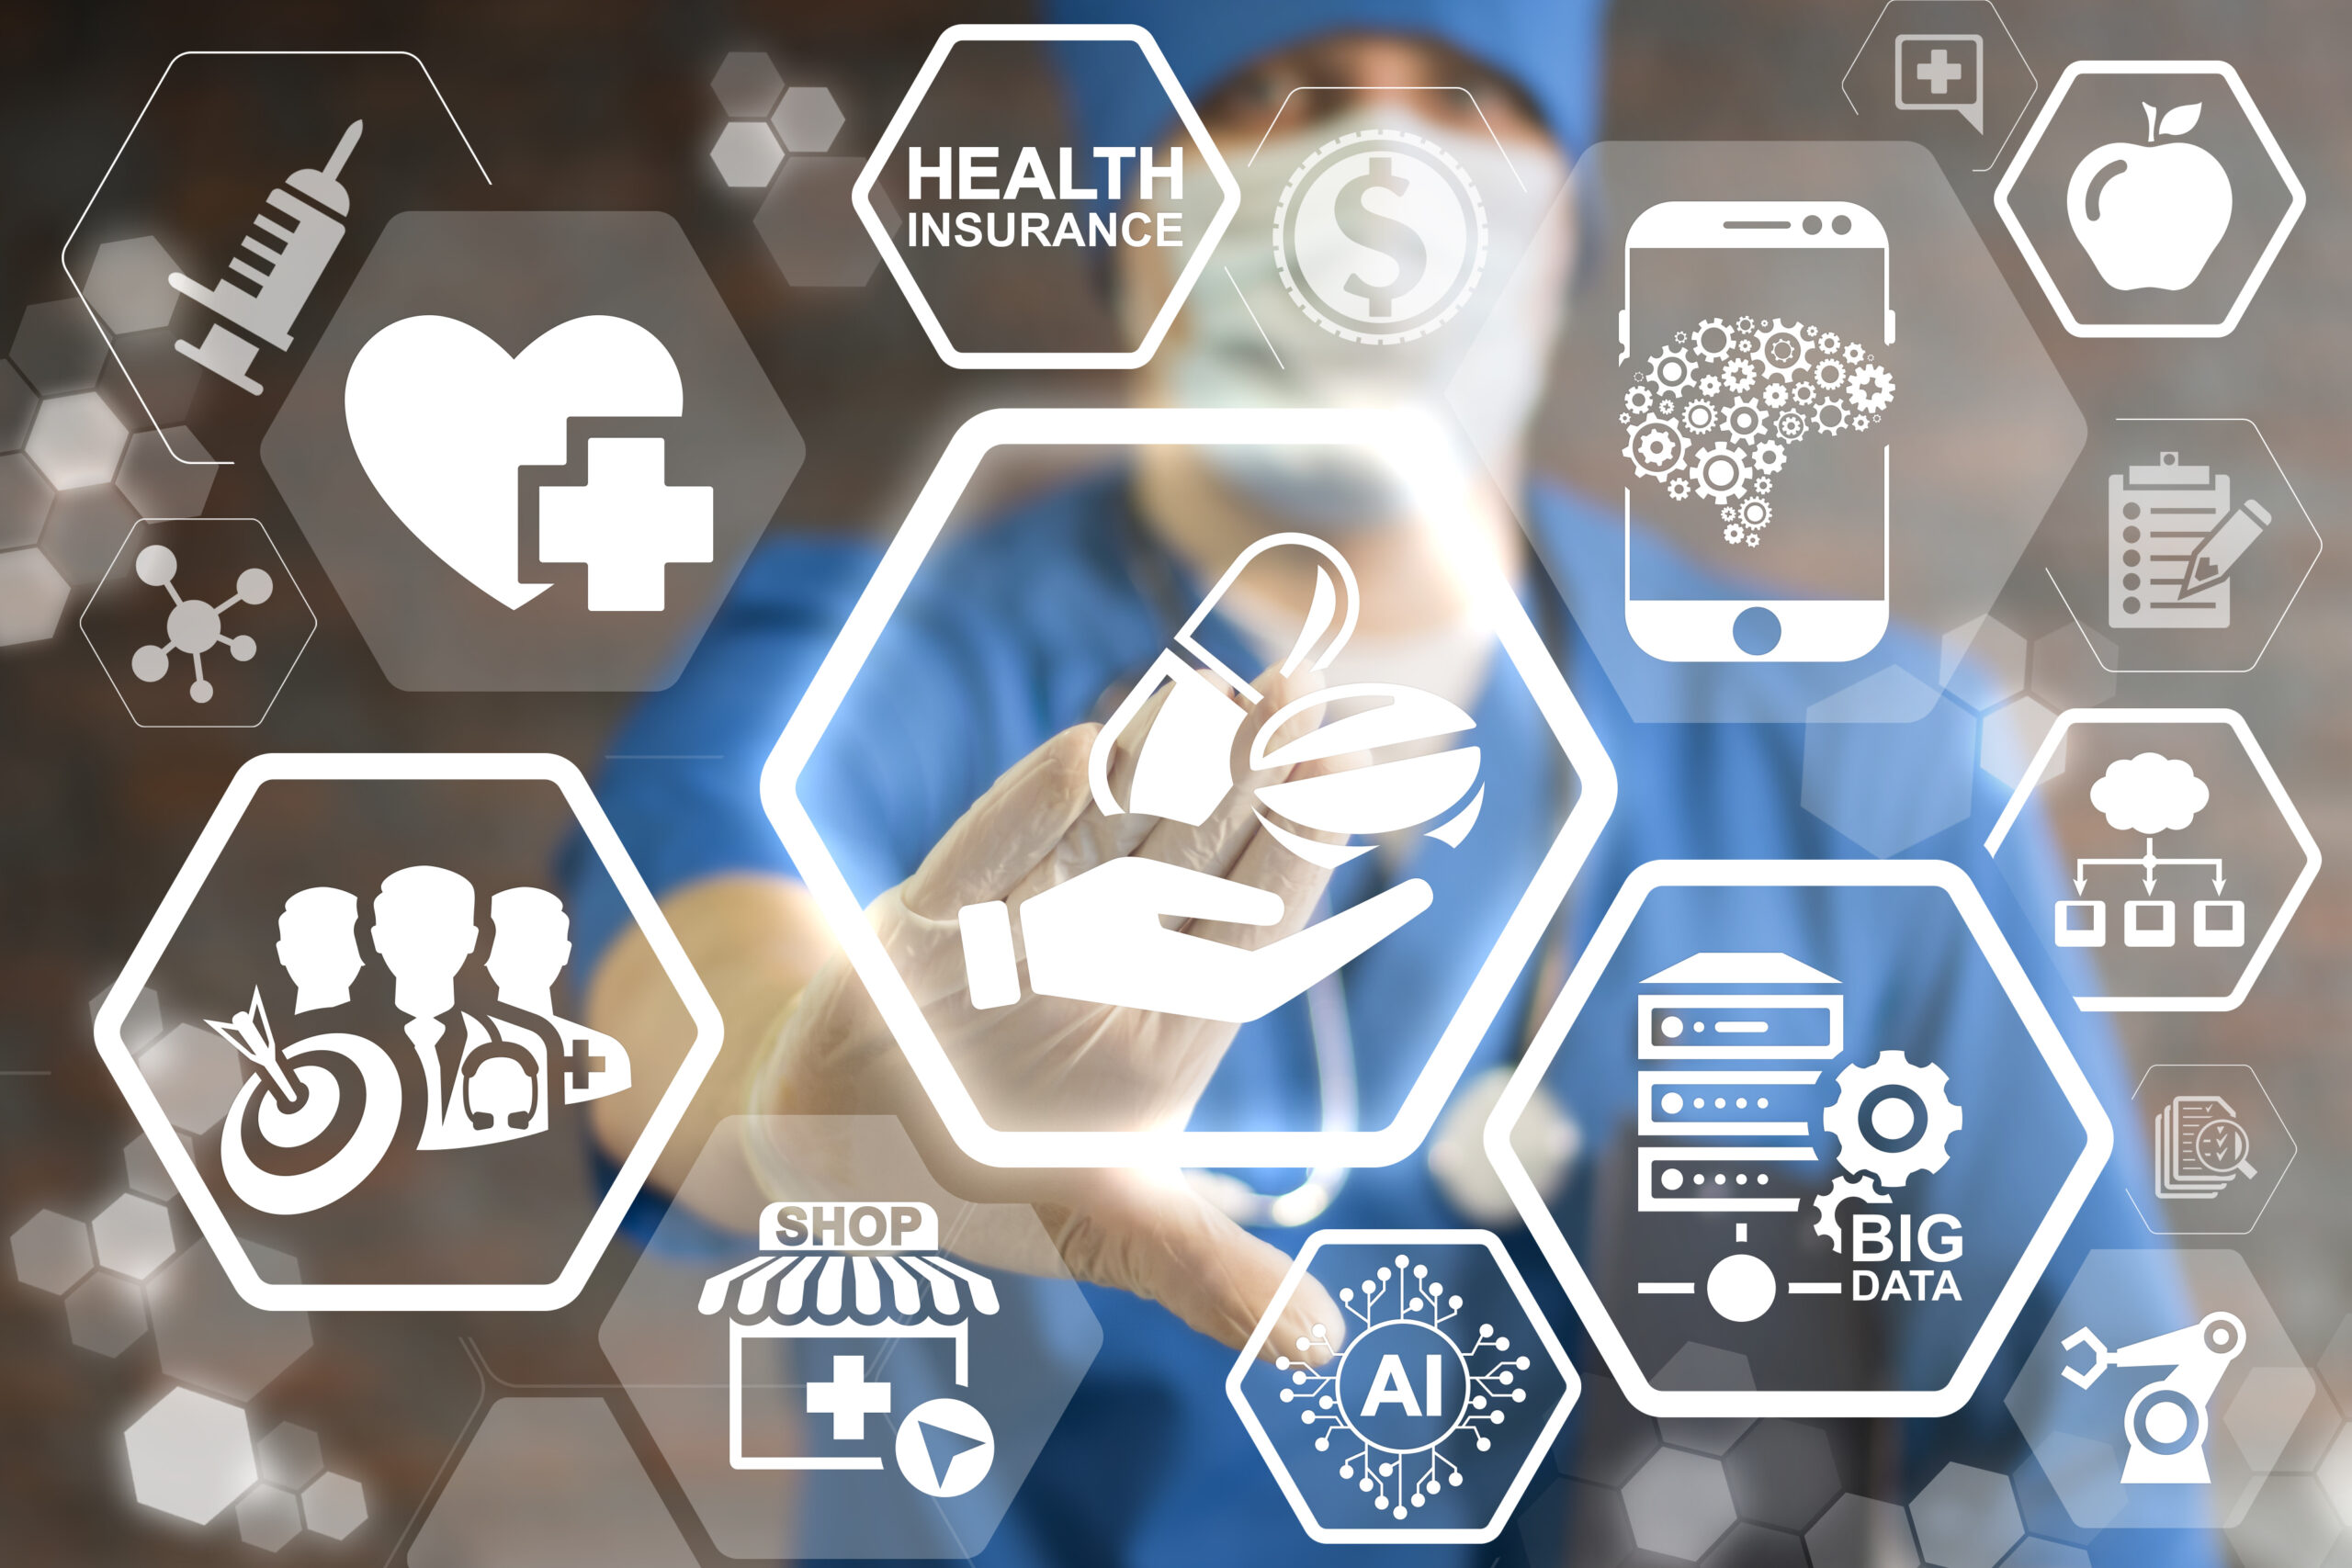 Pharmacy,,Medicine,And,Healthcare,Concept,-,Doctor,Presses,Icon,Hand